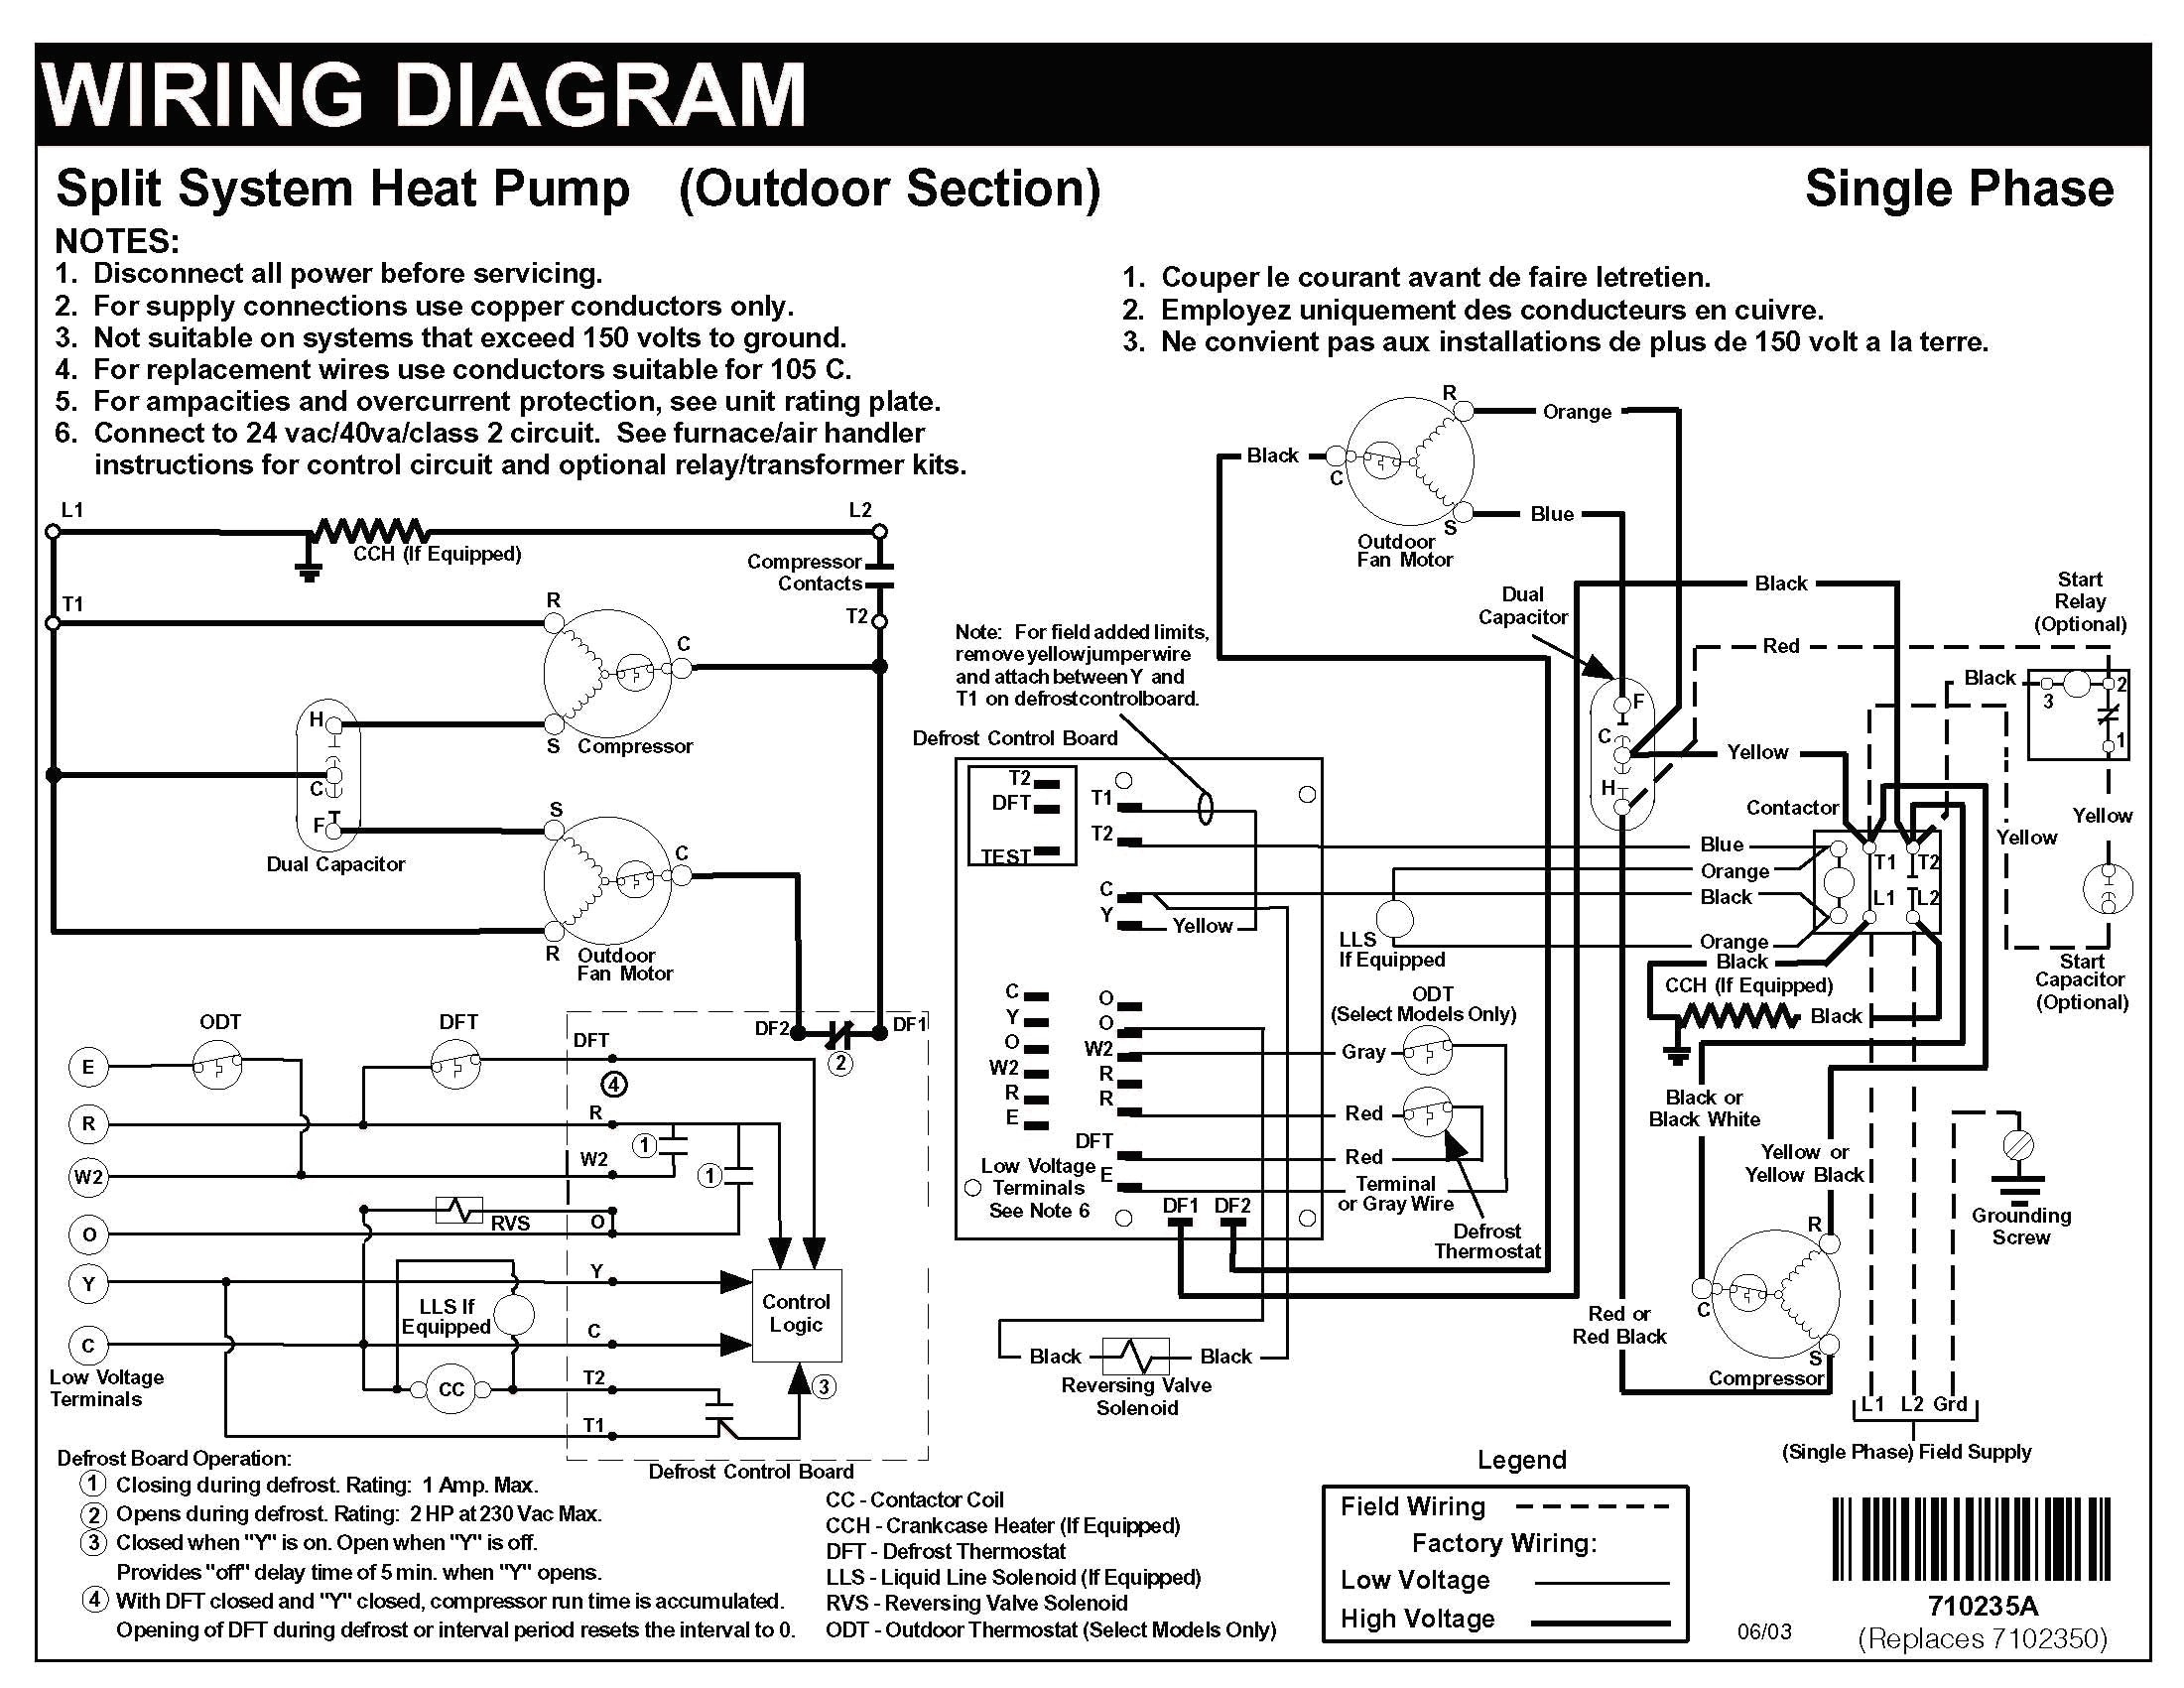 carrier heat pump wiring diagram Collection-Wiring Diagram Hvac thermostat Fresh Nest thermostat Wiring Diagram Heat Pump Elegant Famous Carrier Heat 17-n